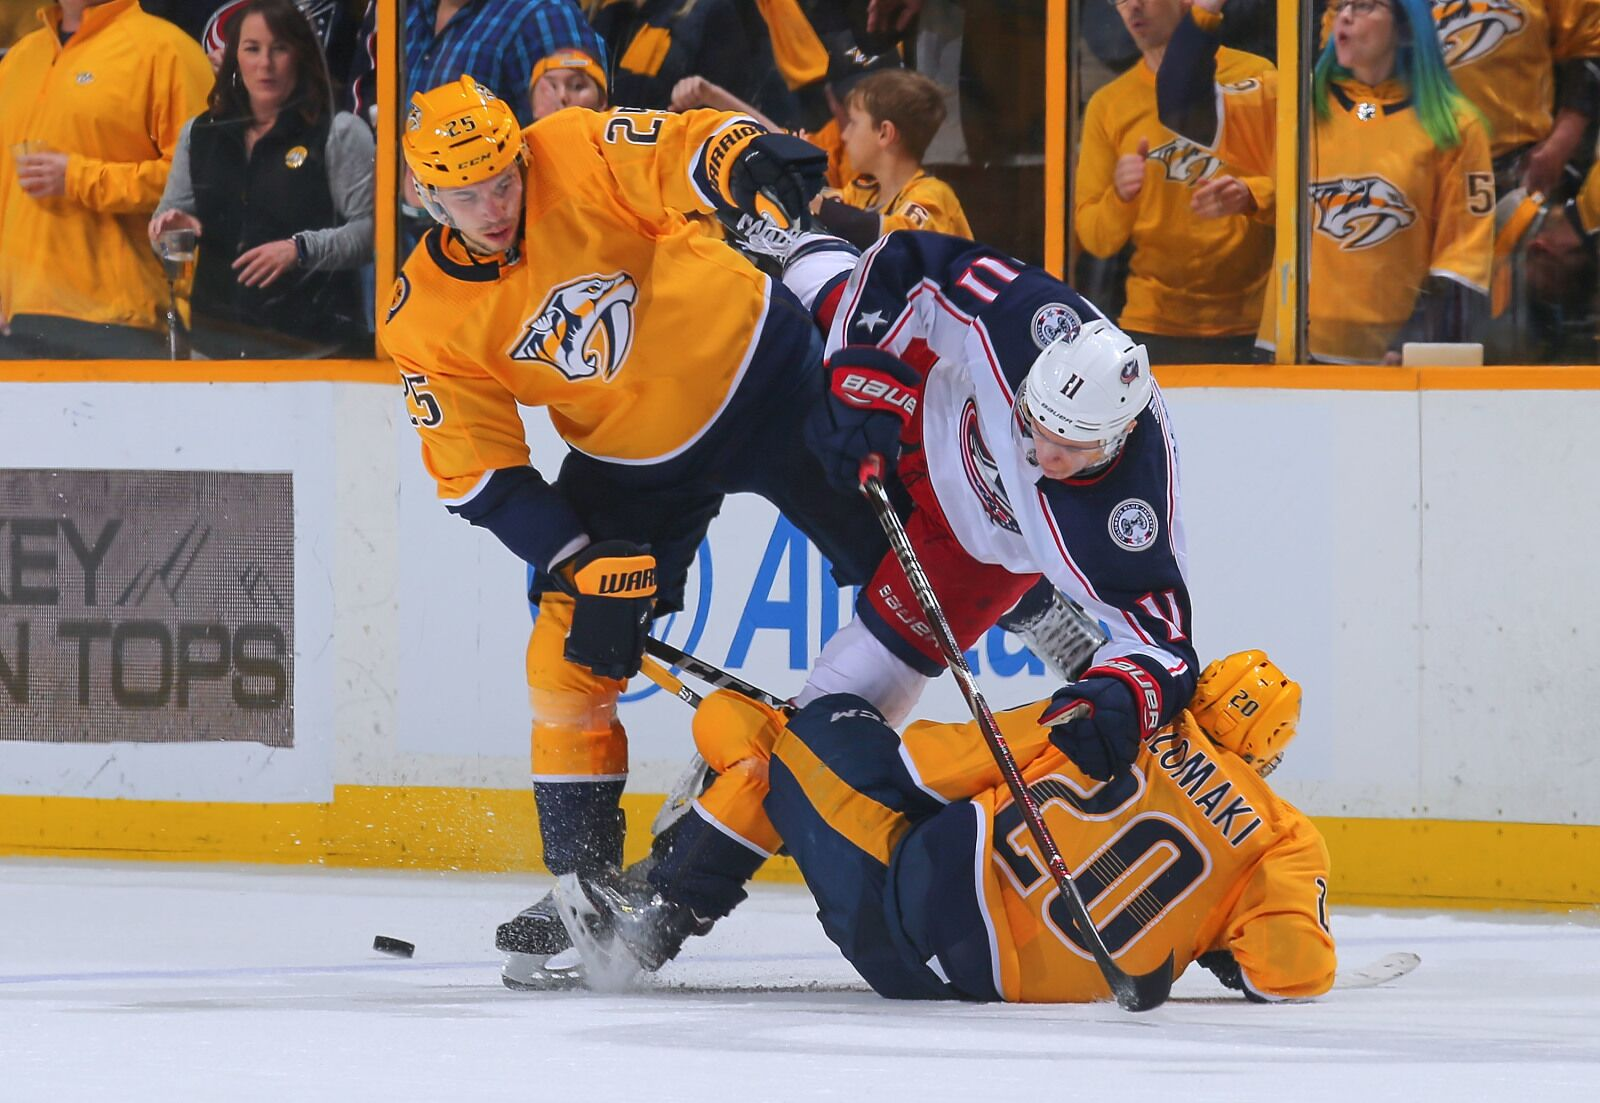 943187114-columbus-blue-jackets-v-nashville-predators.jpg